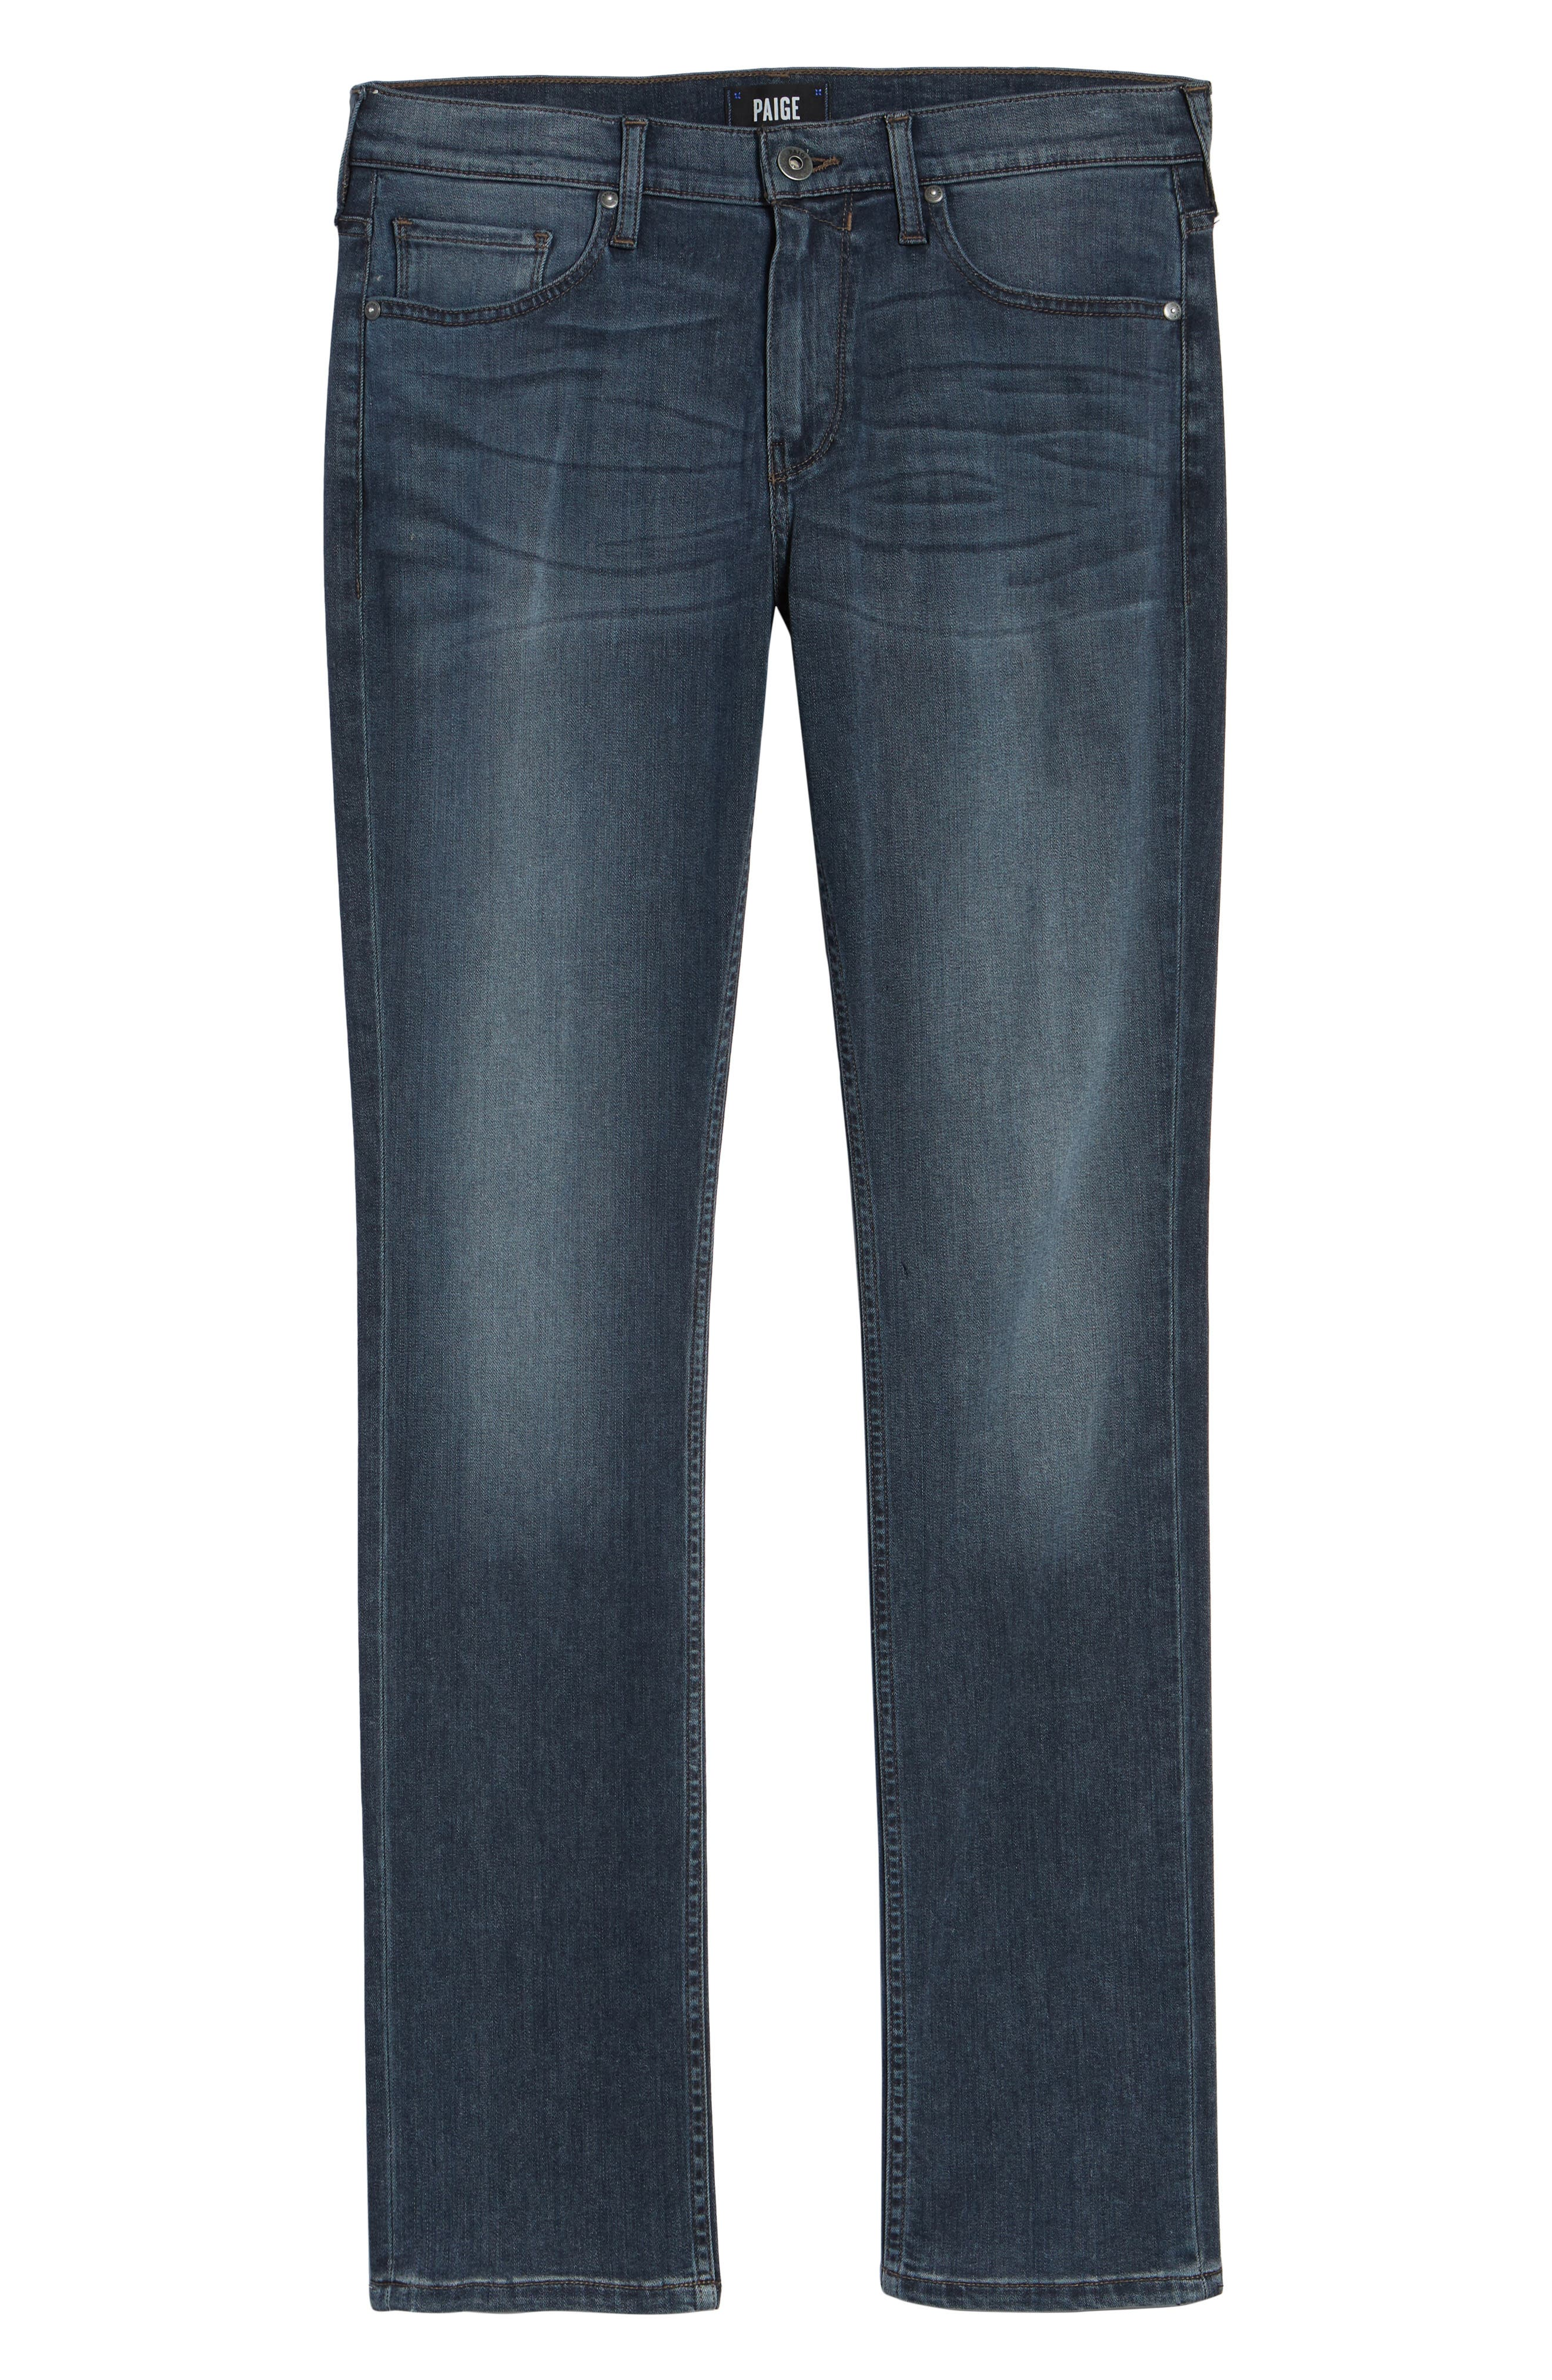 PAIGE,                             Transcend - Federal Slim Straight Leg Jeans,                             Alternate thumbnail 6, color,                             GARNER